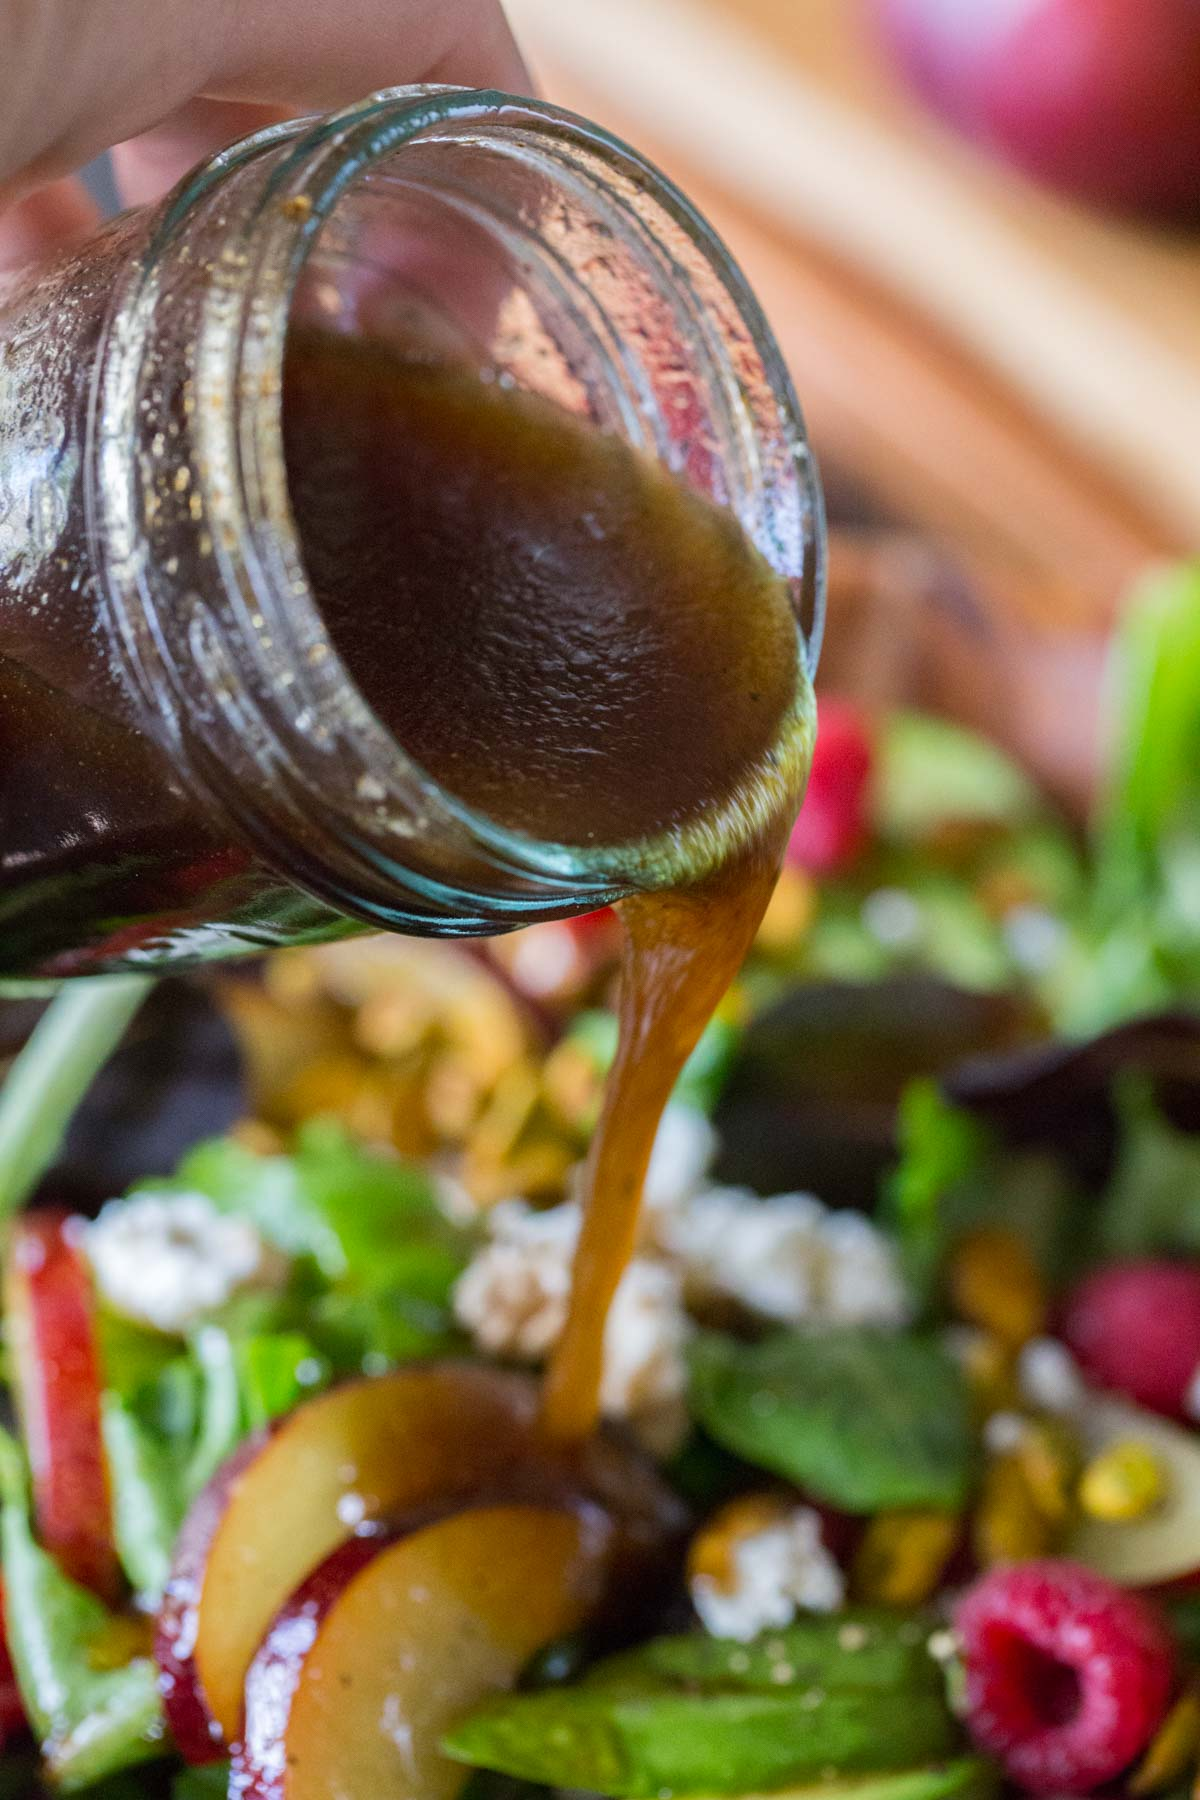 A glass jar of homemade balsamic vinaigrette being poured on top of the Summer Fruited Salad with Goat Cheese and Pistachios.